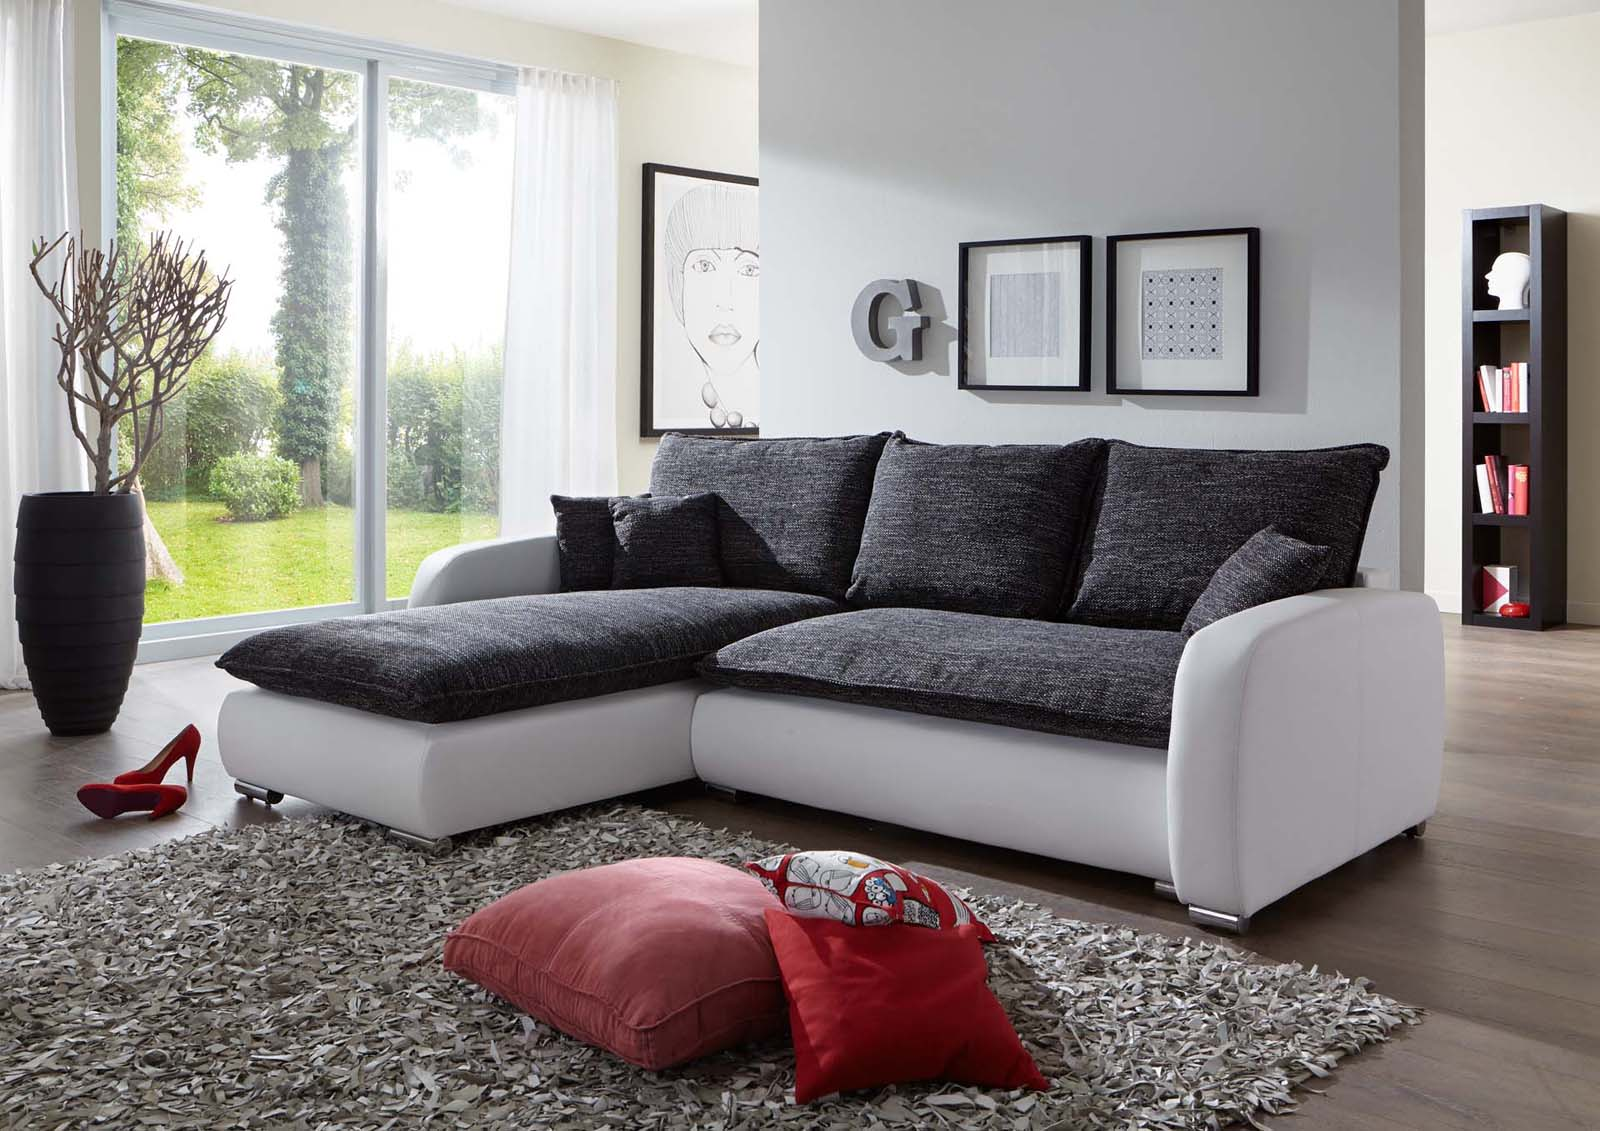 sam ecksofa grau wei scala 24 sofa 180 x 260 cm bestellware. Black Bedroom Furniture Sets. Home Design Ideas